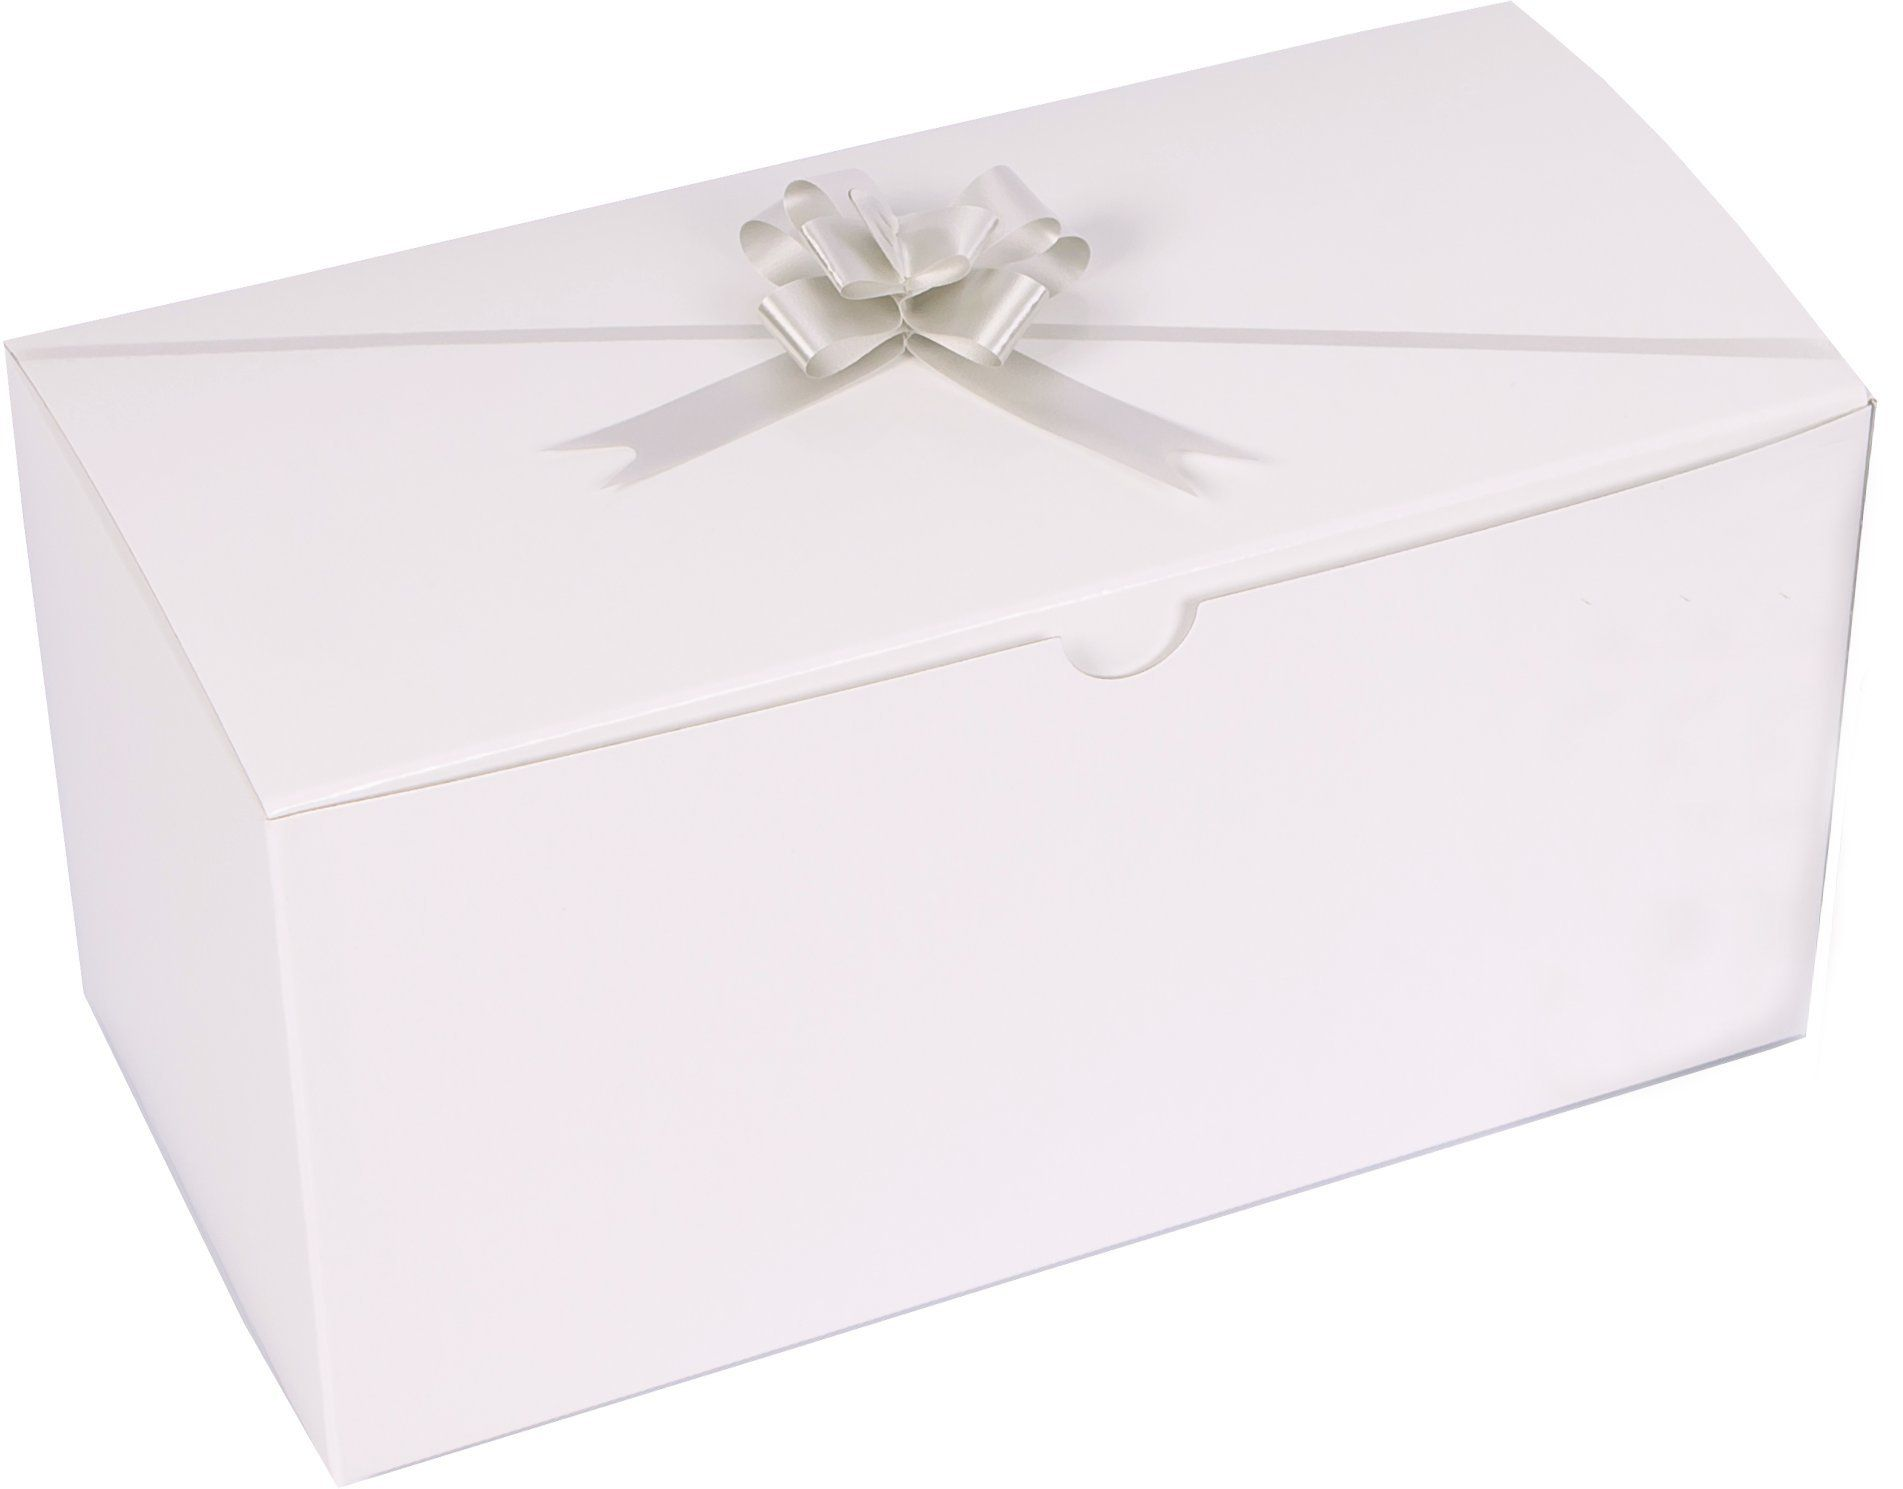 Robot Check Gift Boxes With Lids Favorite Things Gift White Gift Boxes